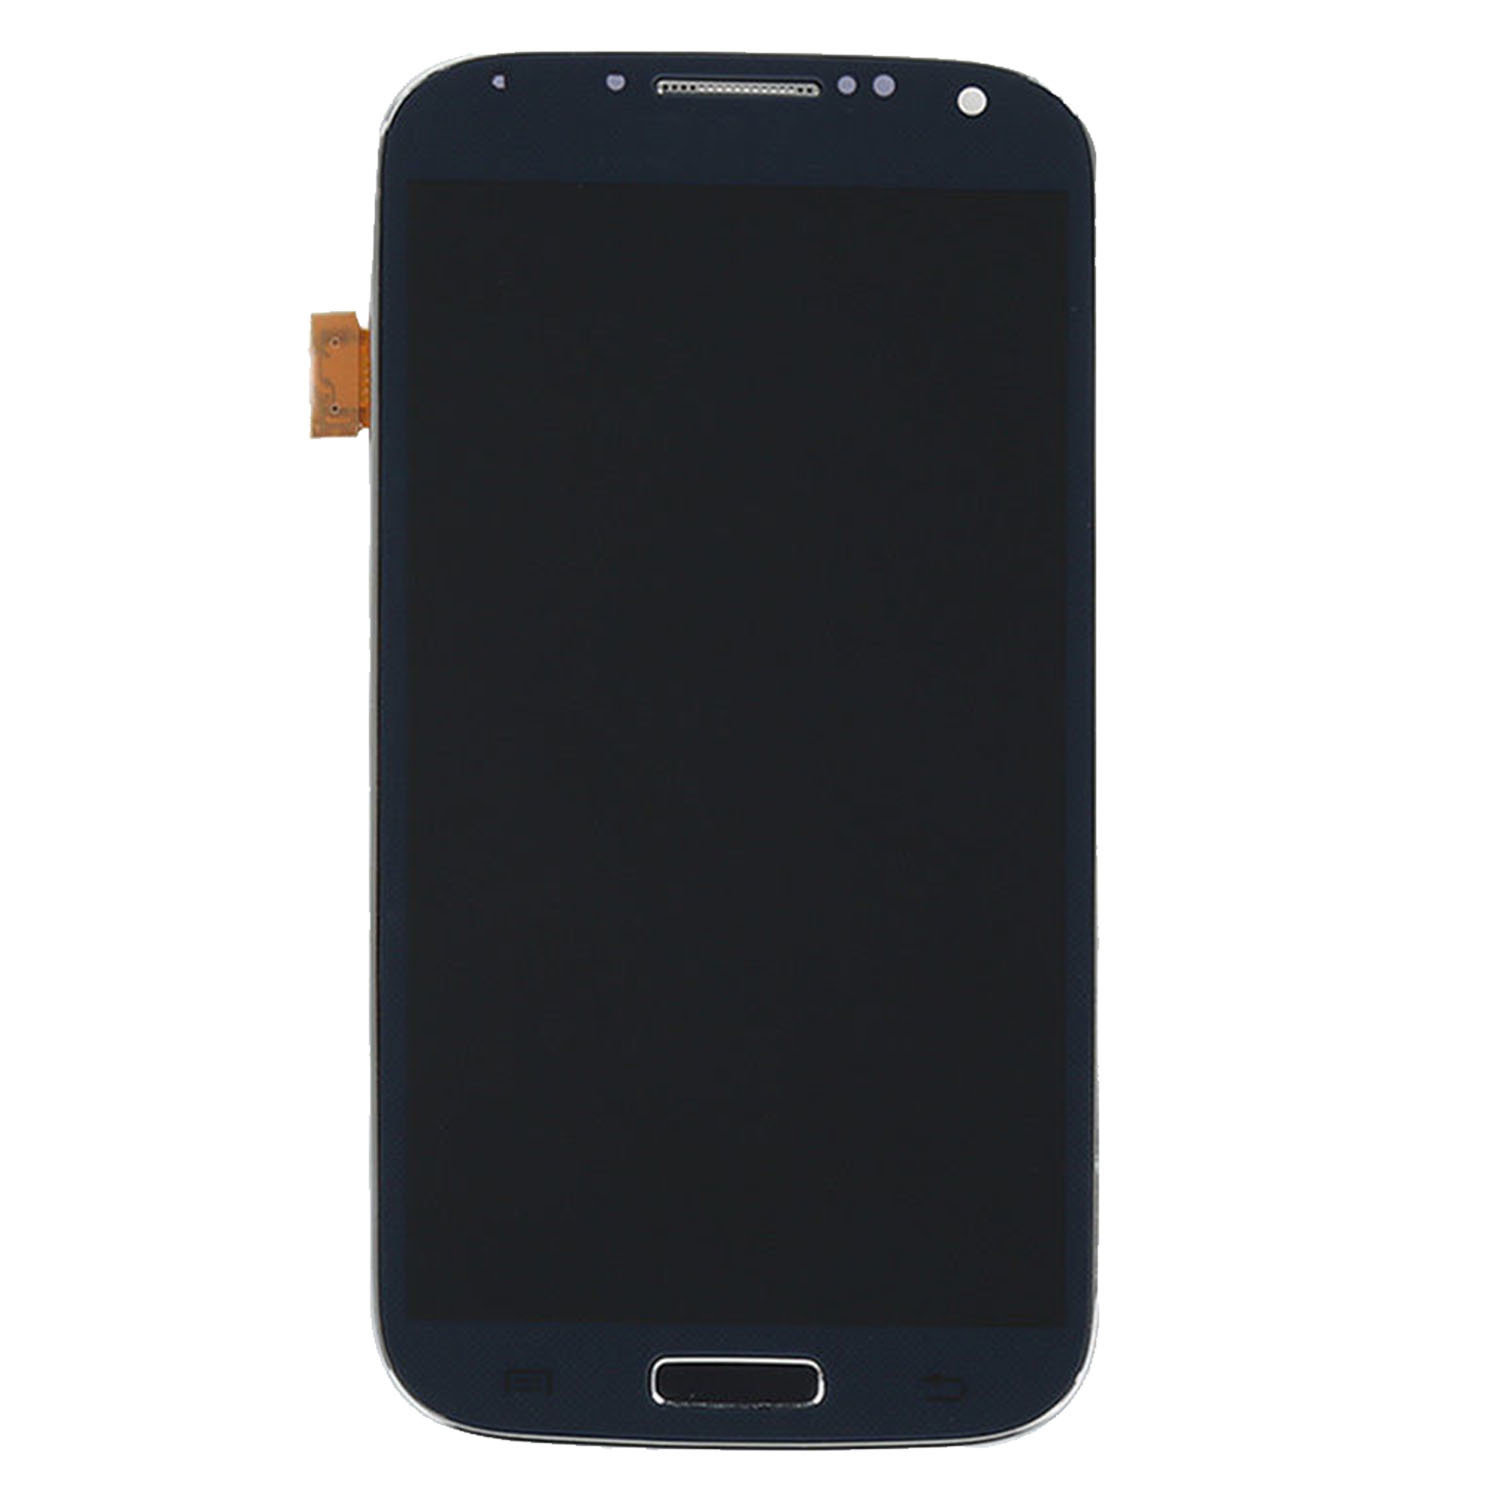 Samsung Galaxy S4 Screen Replacement - Black